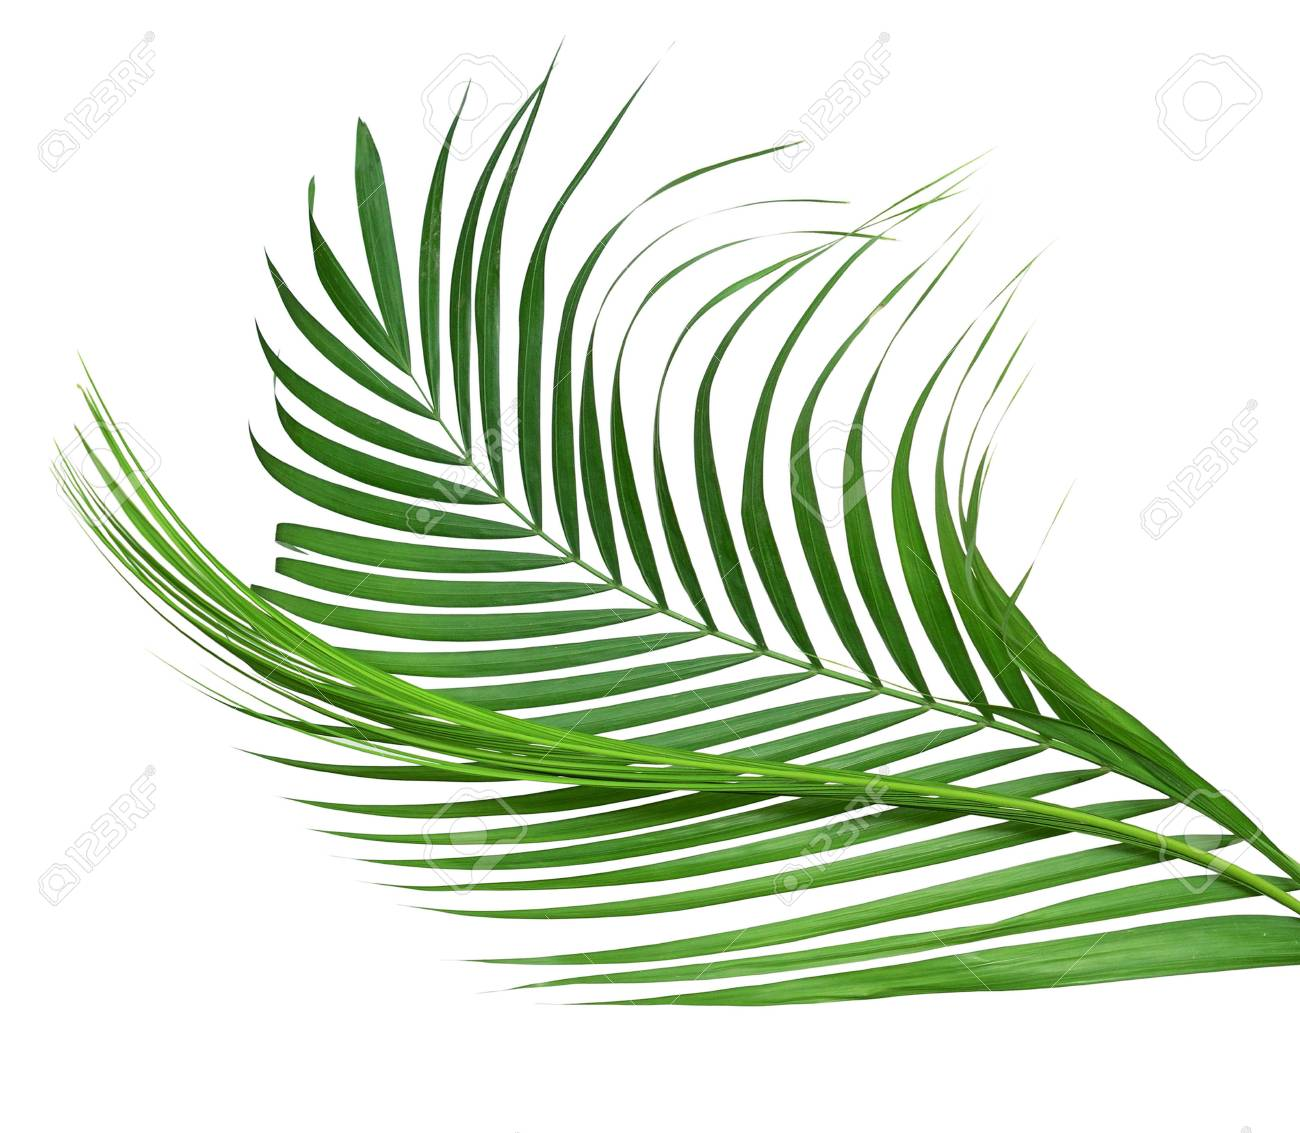 Yellow Palm Leaves Dypsis Lutescens Or Golden Cane Palm Areca Stock Photo Picture And Royalty Free Image Image 122708670